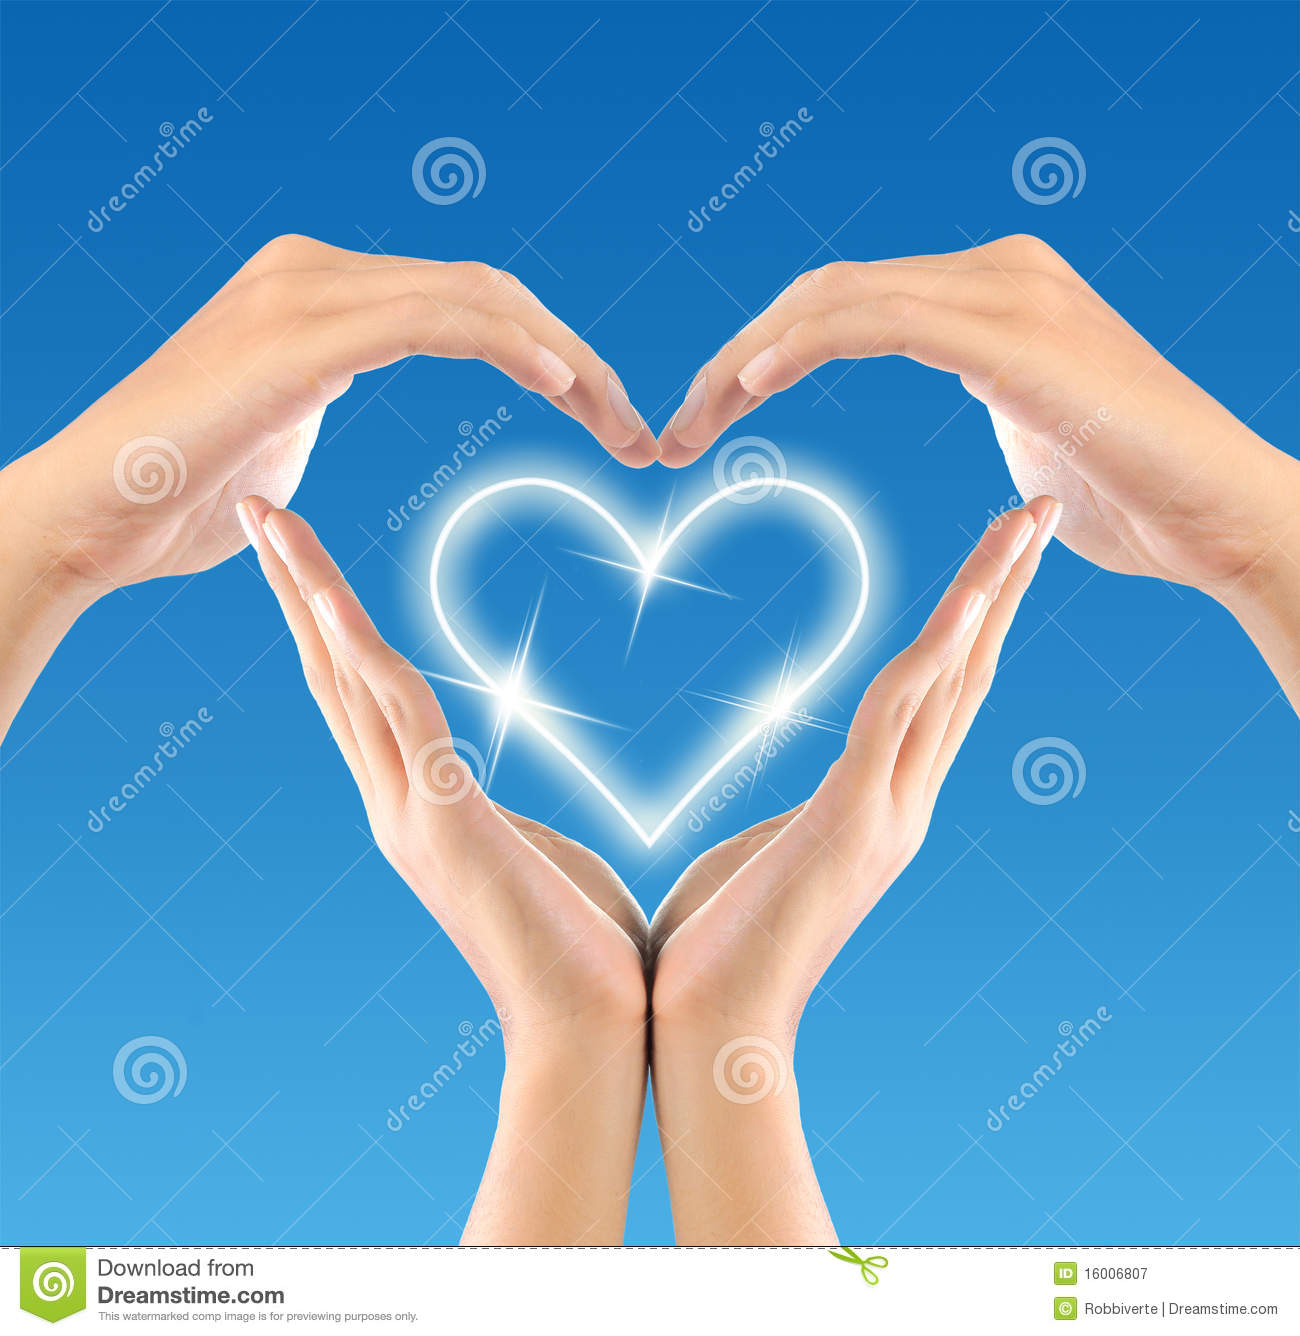 Love Symbol Royalty Free Stock Photography - Image: 16006807